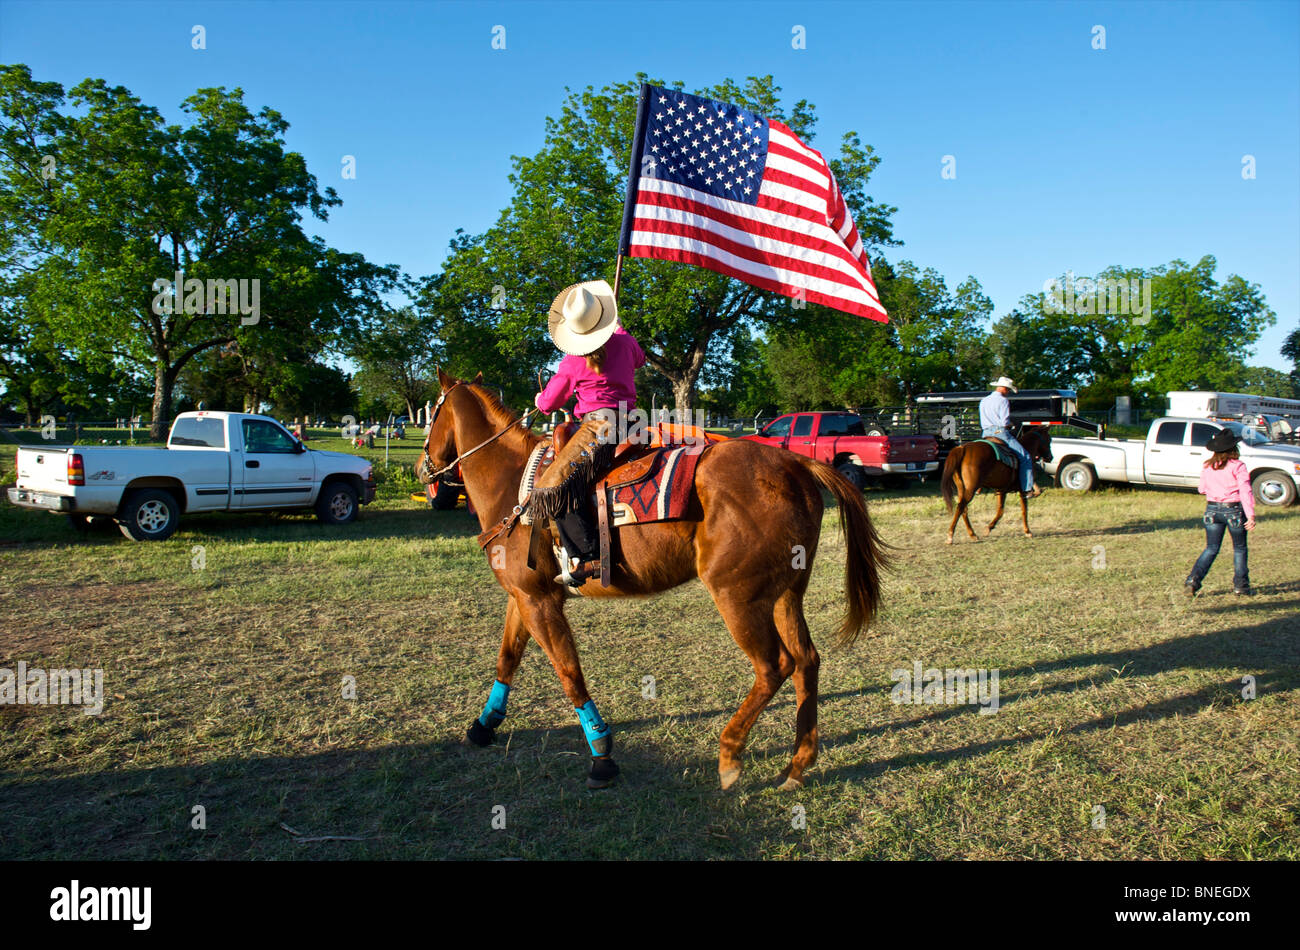 Cowgirl  waving flag in stockyard before opening ceremony of PRCA Rodeo Event in Texas, USA Stock Photo